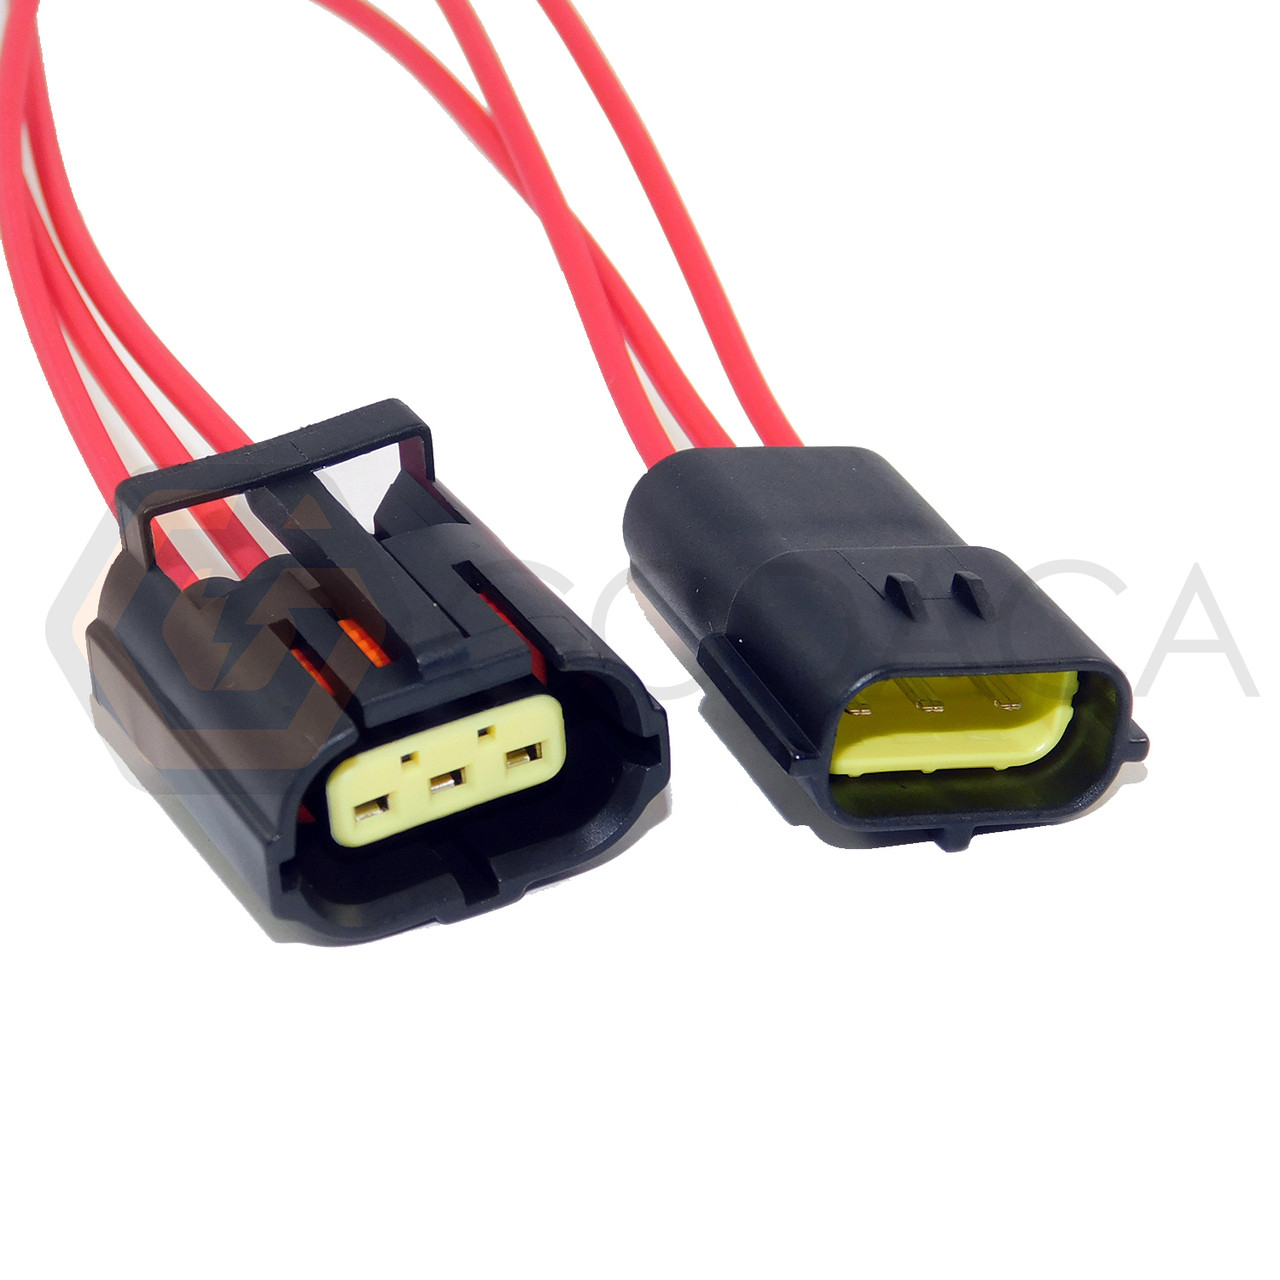 small resolution of 1x female and male connector 3 way for ford inertia wpt 414 godaca llc